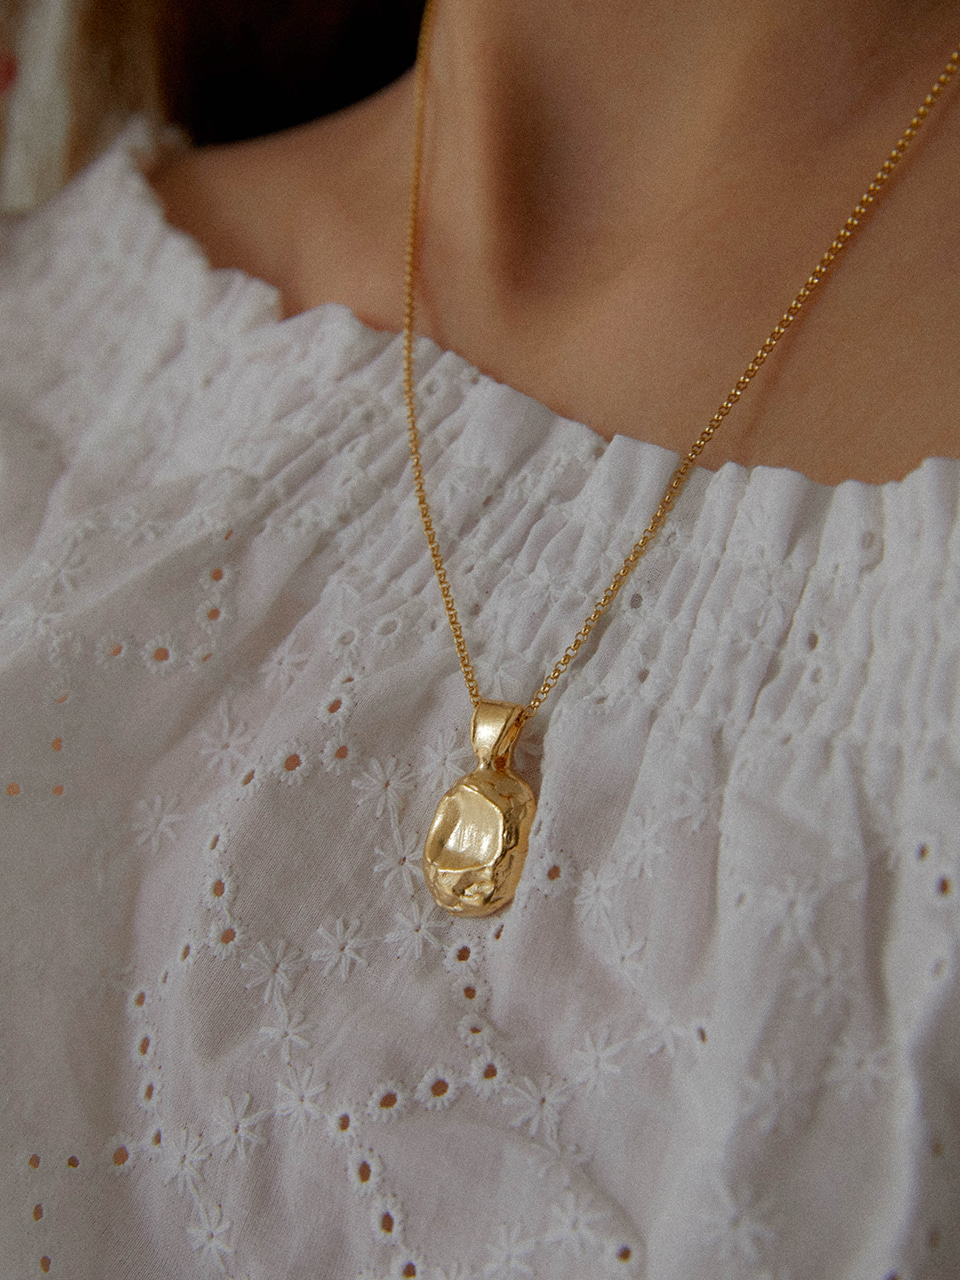 crumple necklace